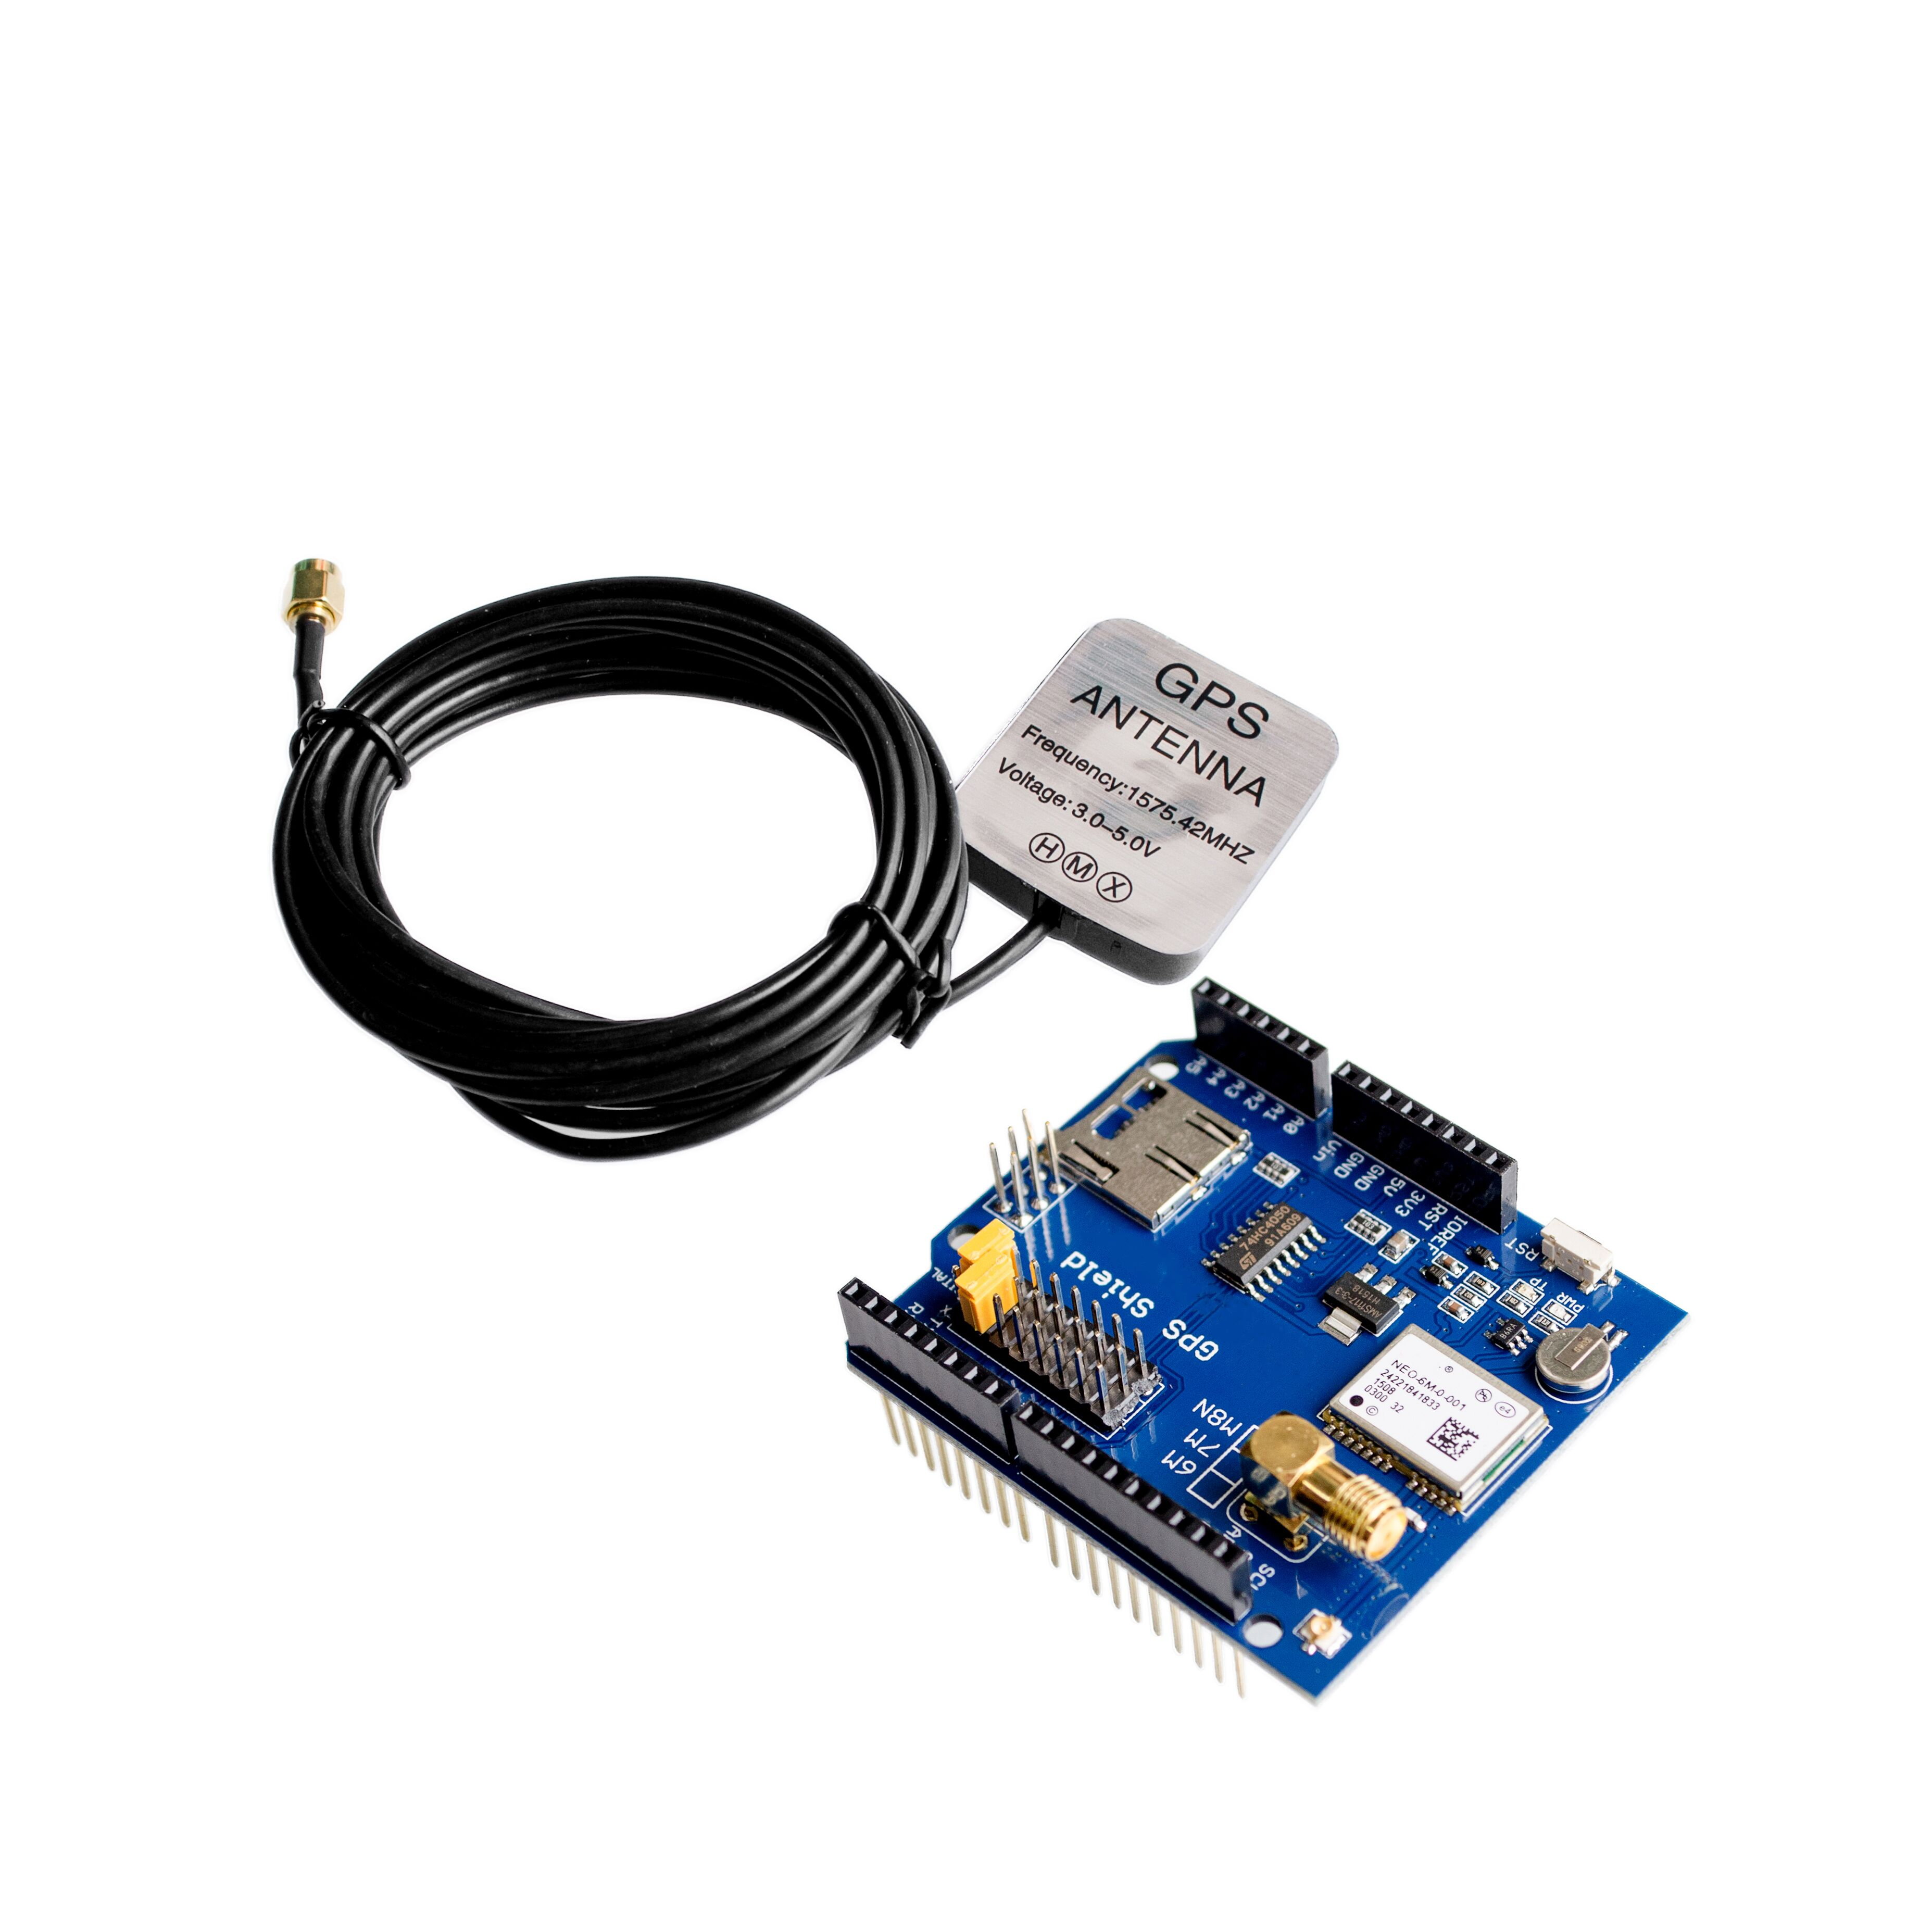 ! NEO-6M GPS Shield GPS record expansion board GPS module with SD slot card With Antenna  UNO R3! NEO-6M GPS Shield GPS record expansion board GPS module with SD slot card With Antenna  UNO R3